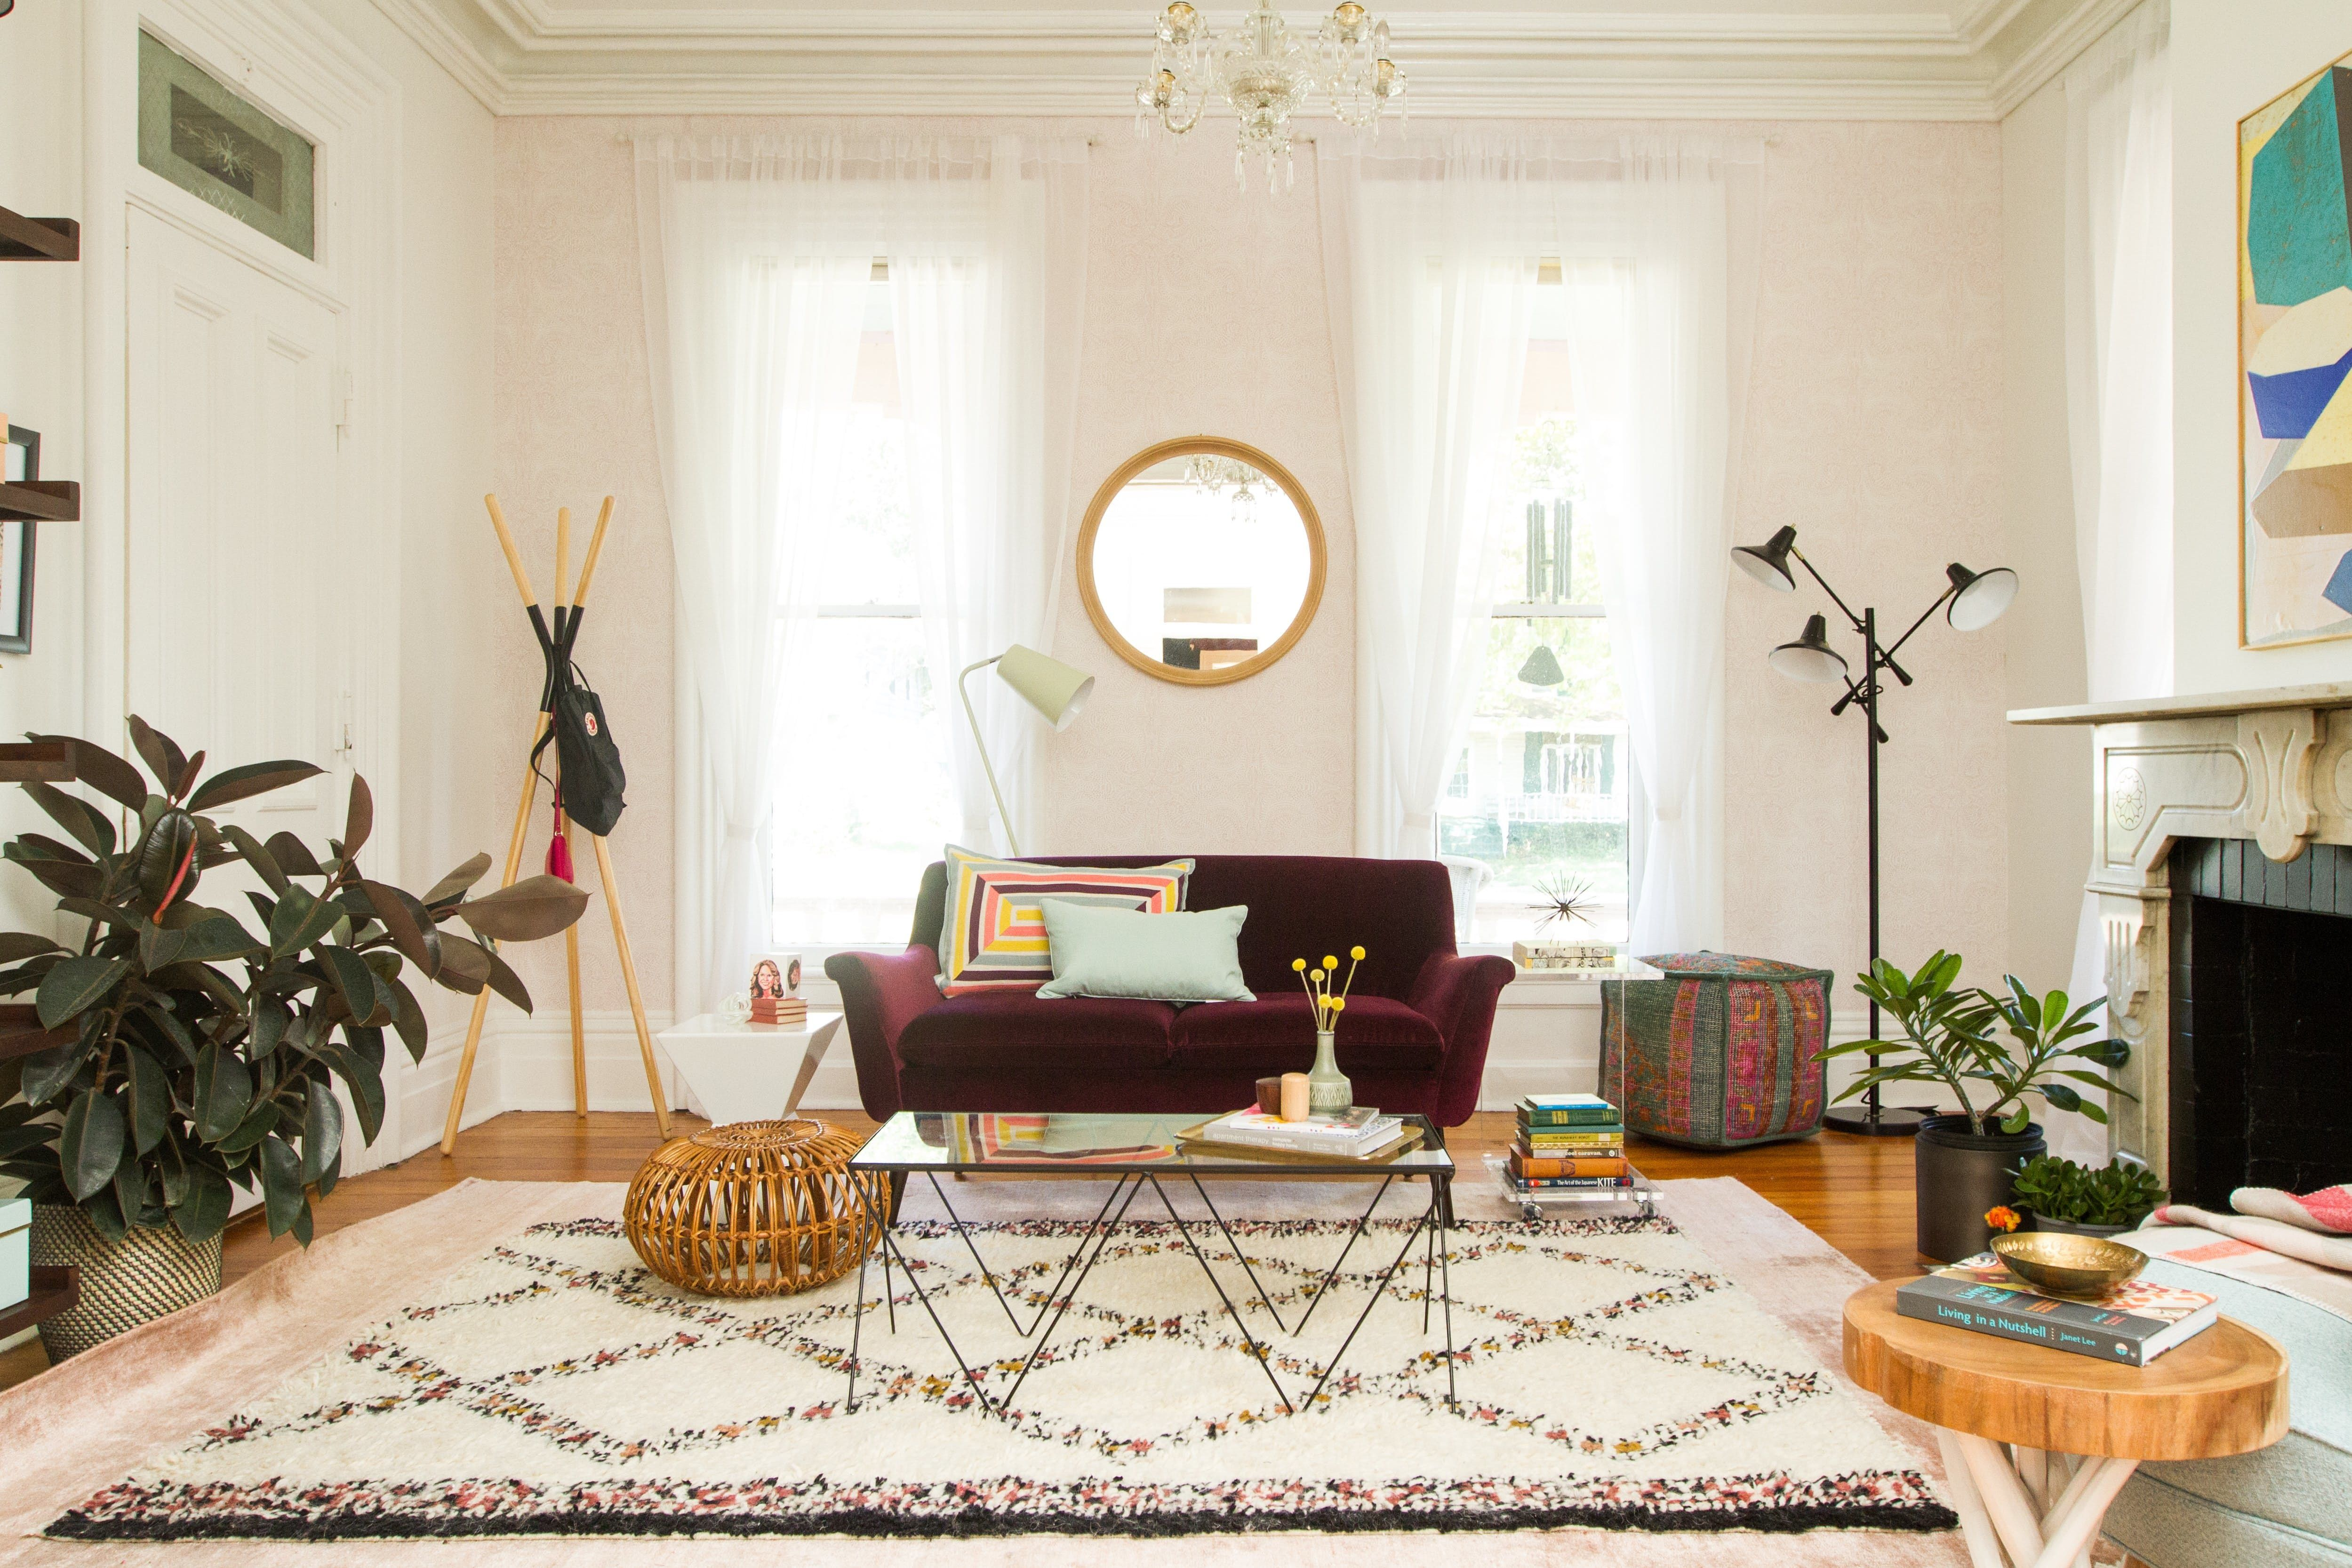 Before & After: A Small Victorian Living Room Gets an Apartment ...